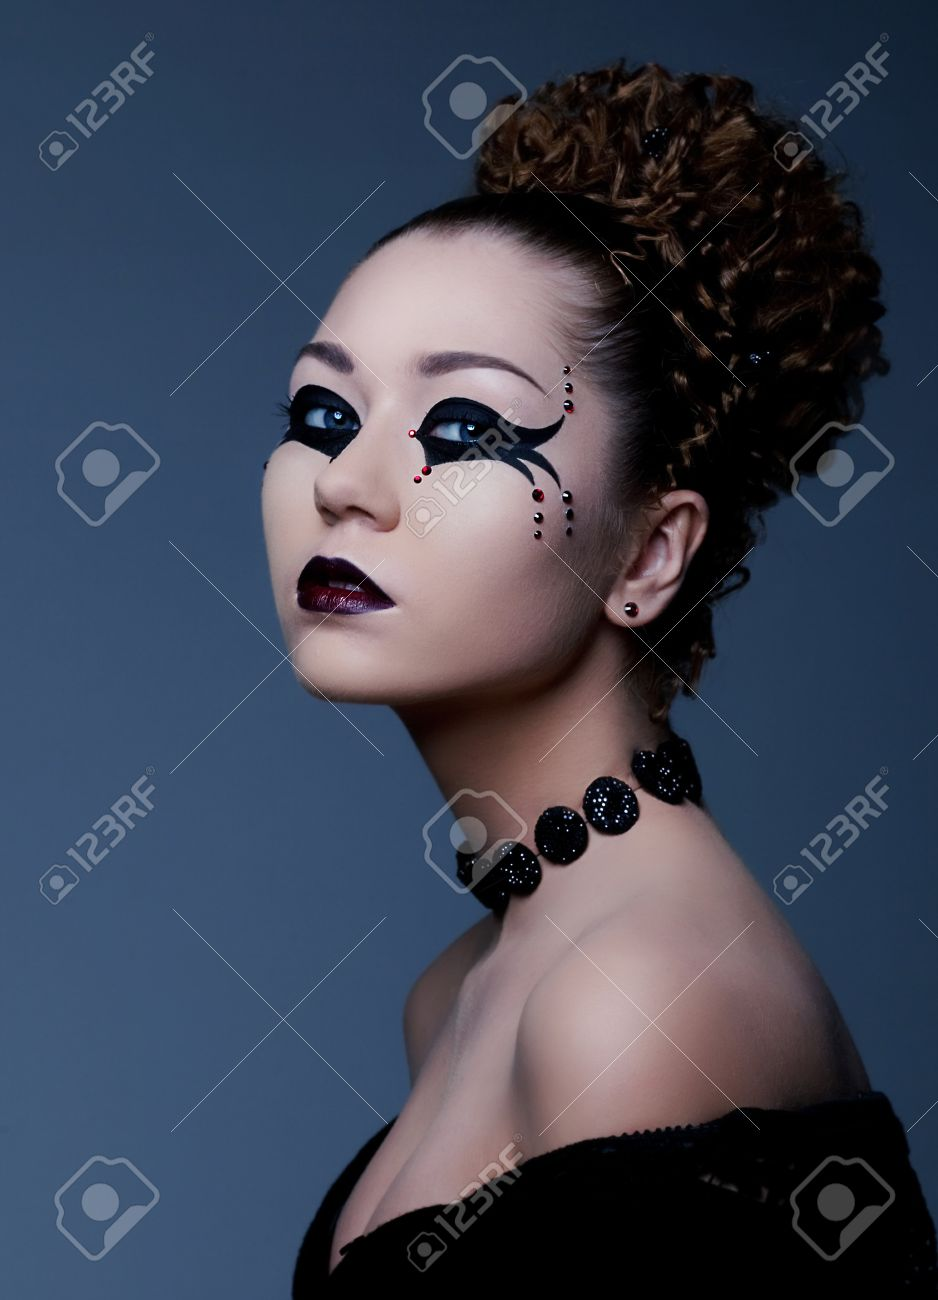 Fashion style portrait of a woman with dramatic theatrical makeup on her face Stock Photo -